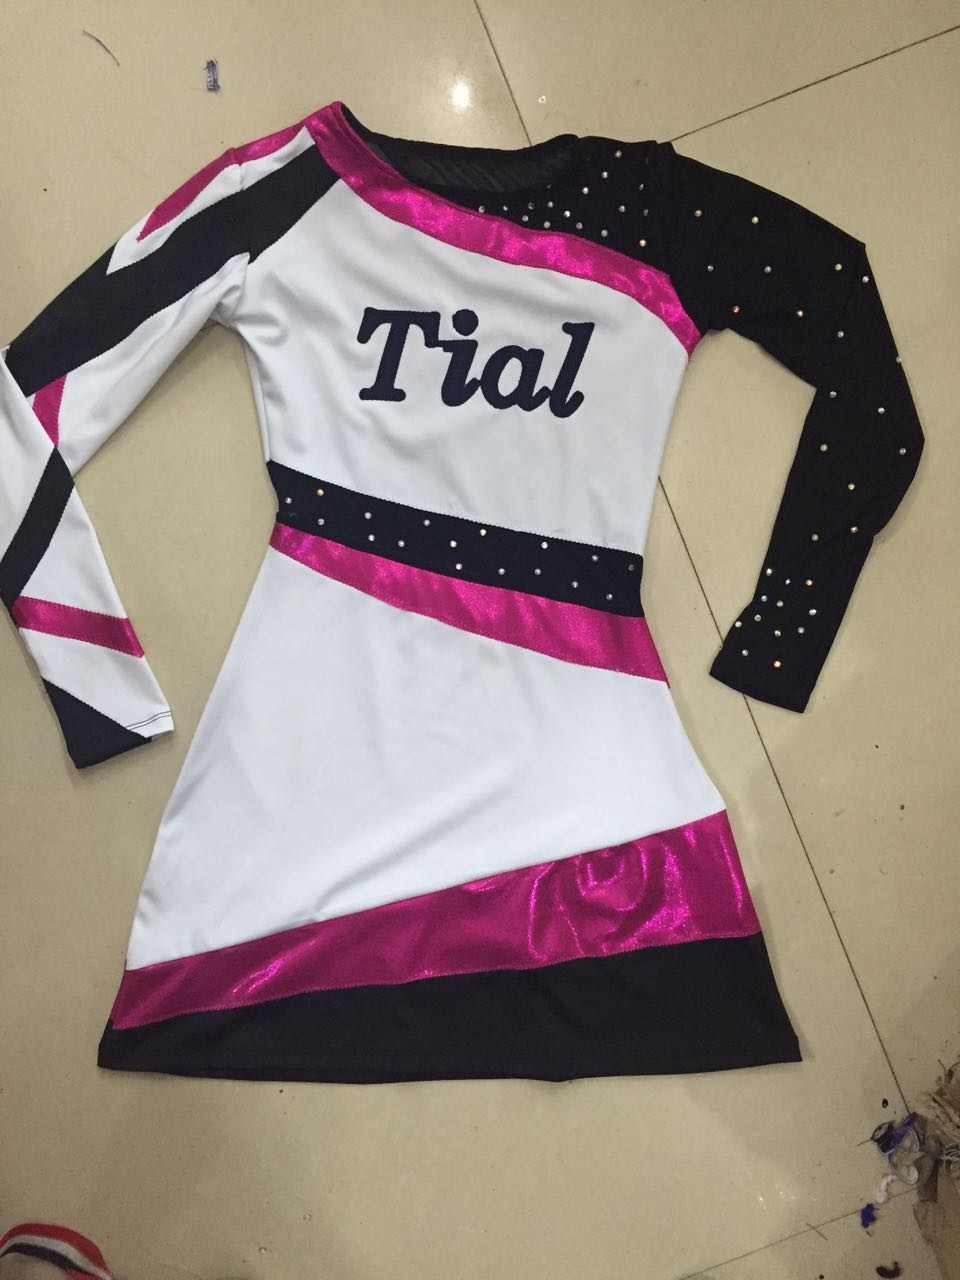 Competion Professional Cheerleader Outfit Hairbow Costume Cheerleader Uniform Custom Made Pick Style